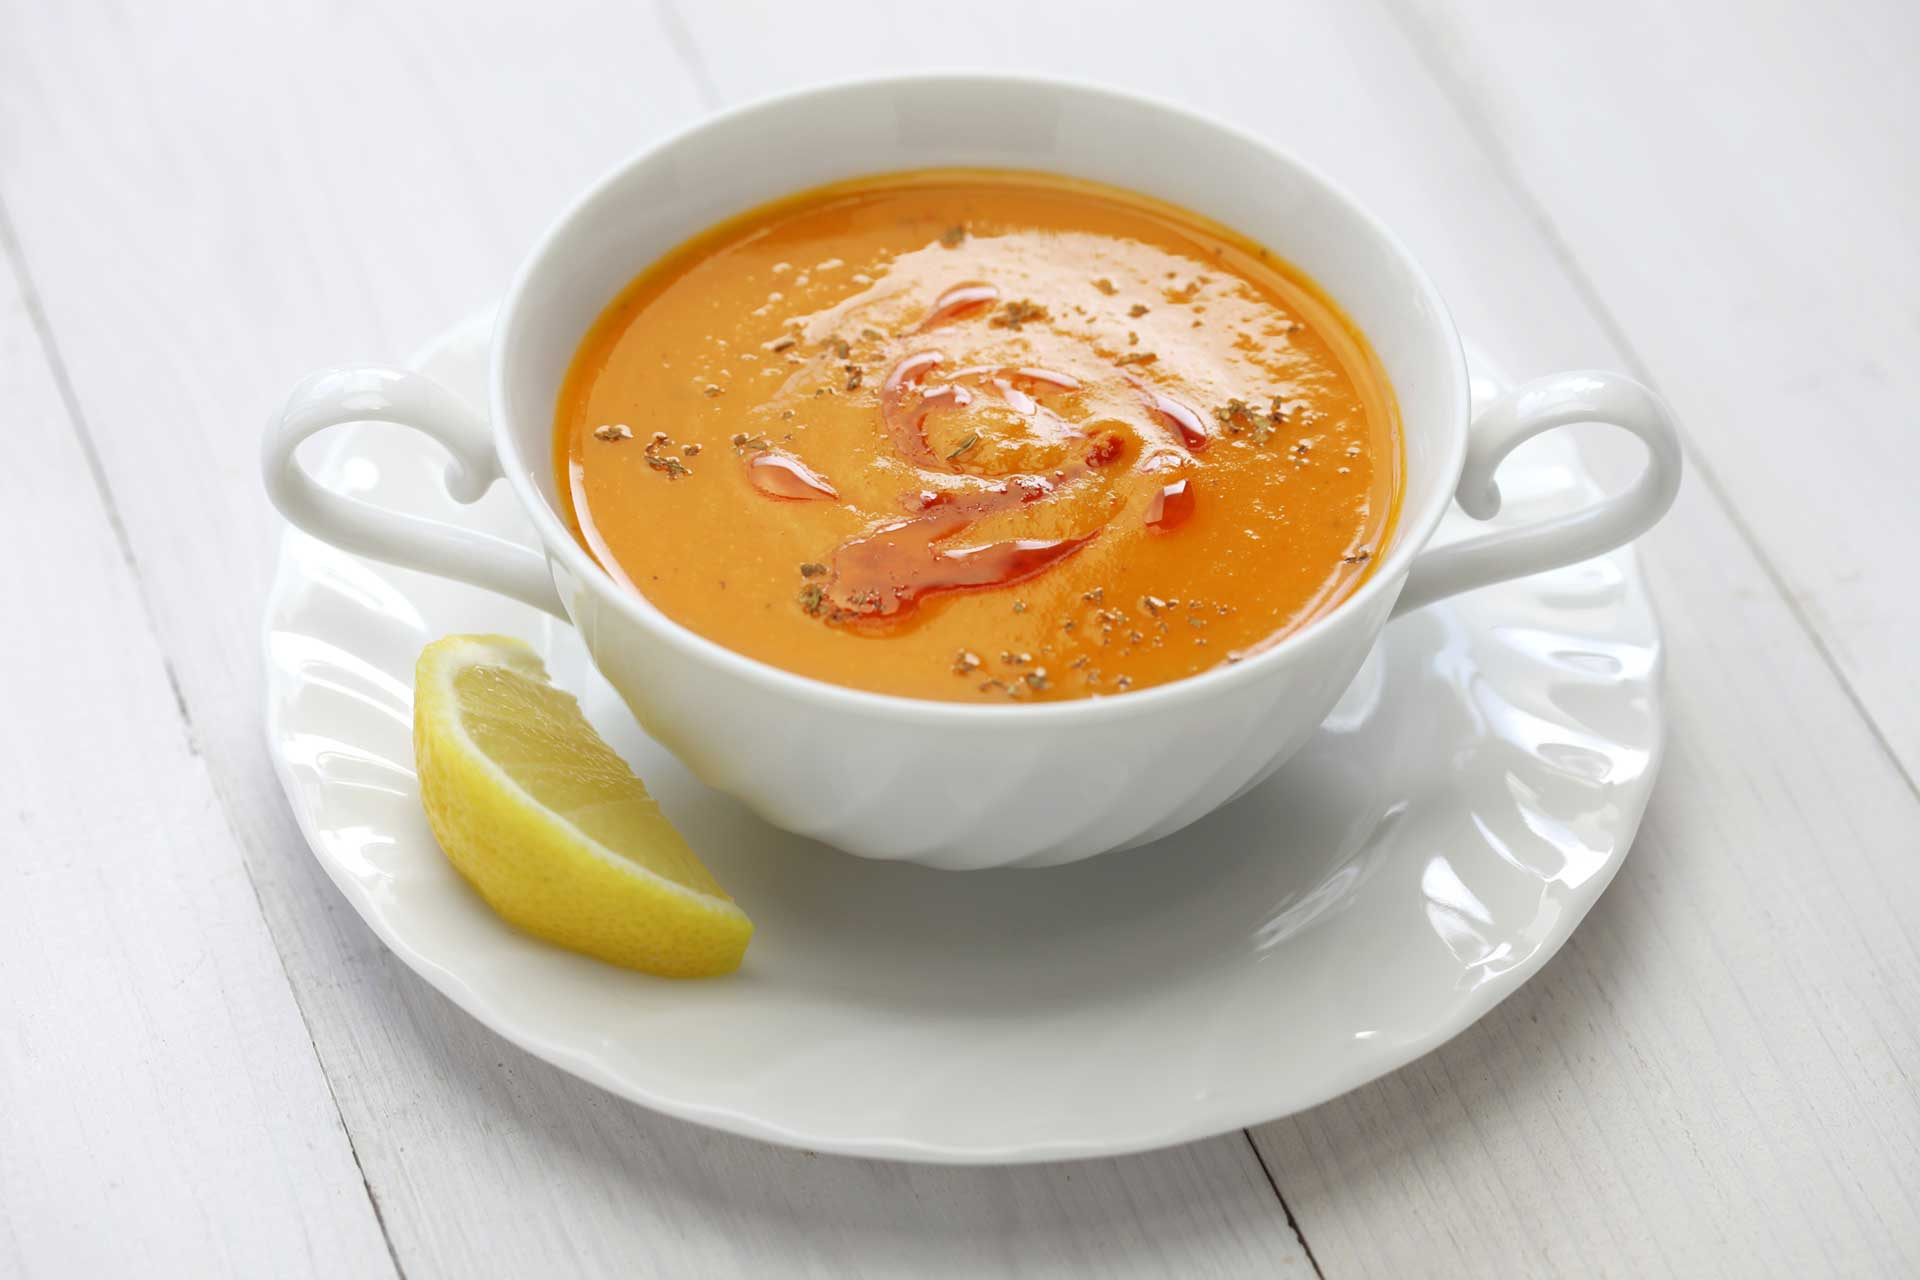 quick and low fat easy to cook Turkish red lentil soup, in a white bowl with slice of lemon on the side